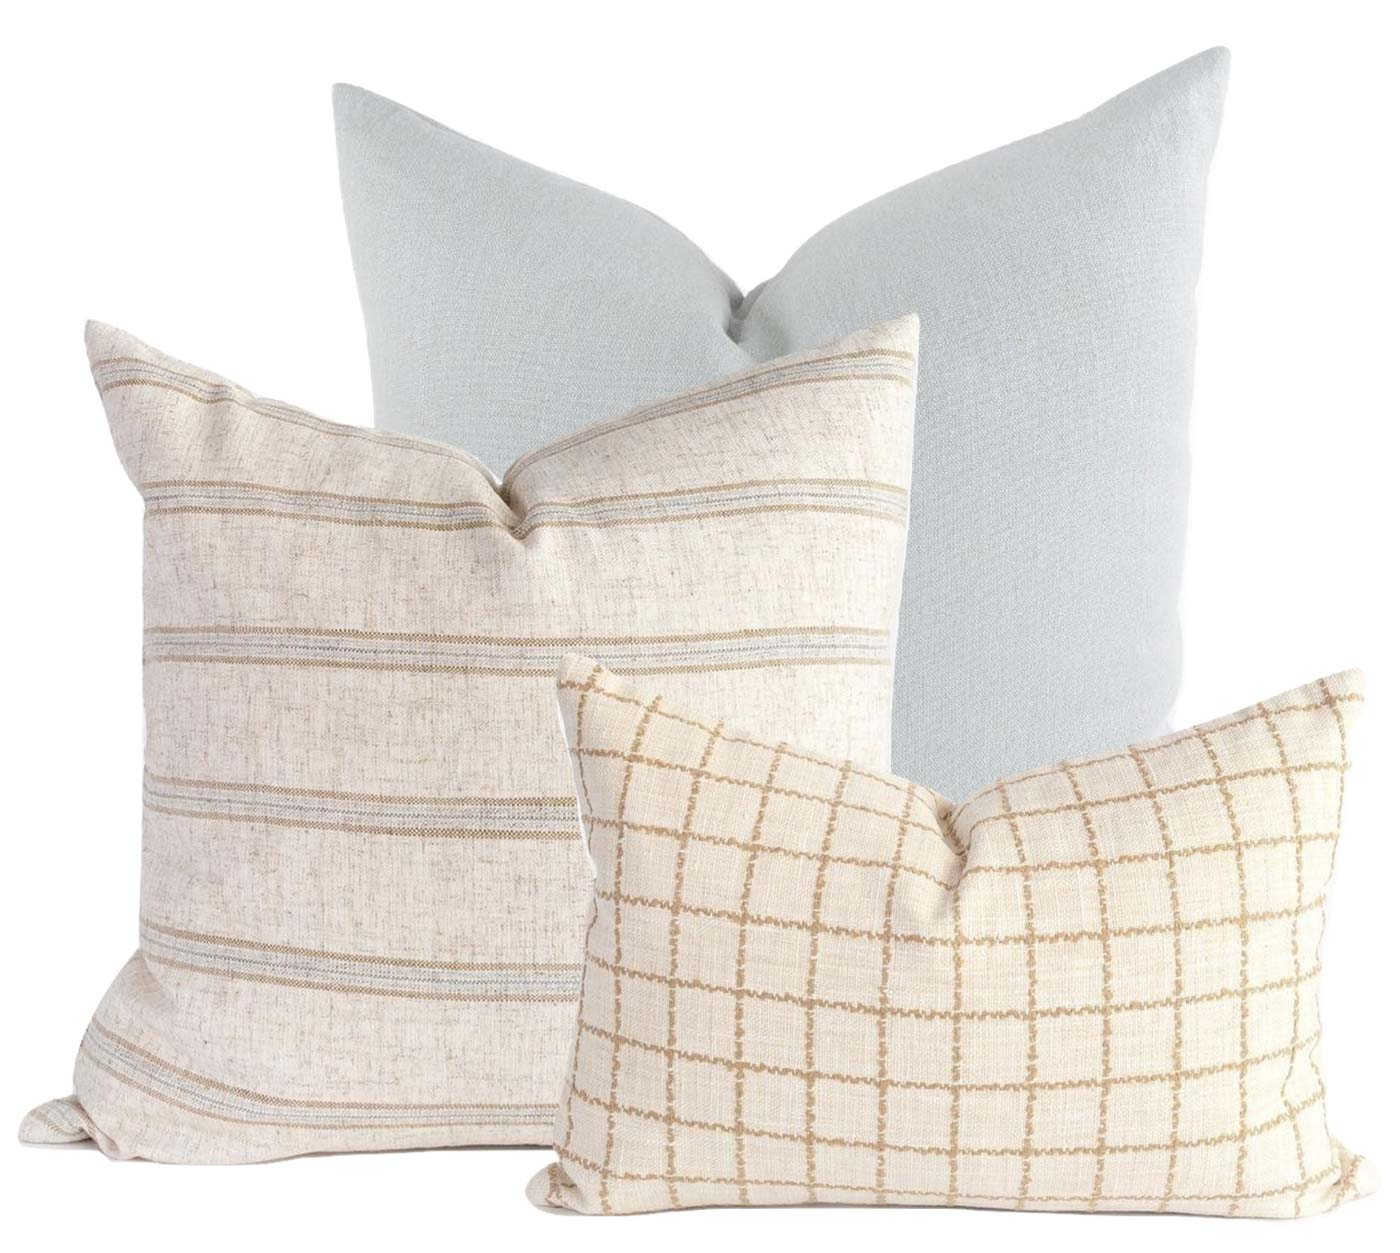 Unique, fresh pillow combo for the Living Room